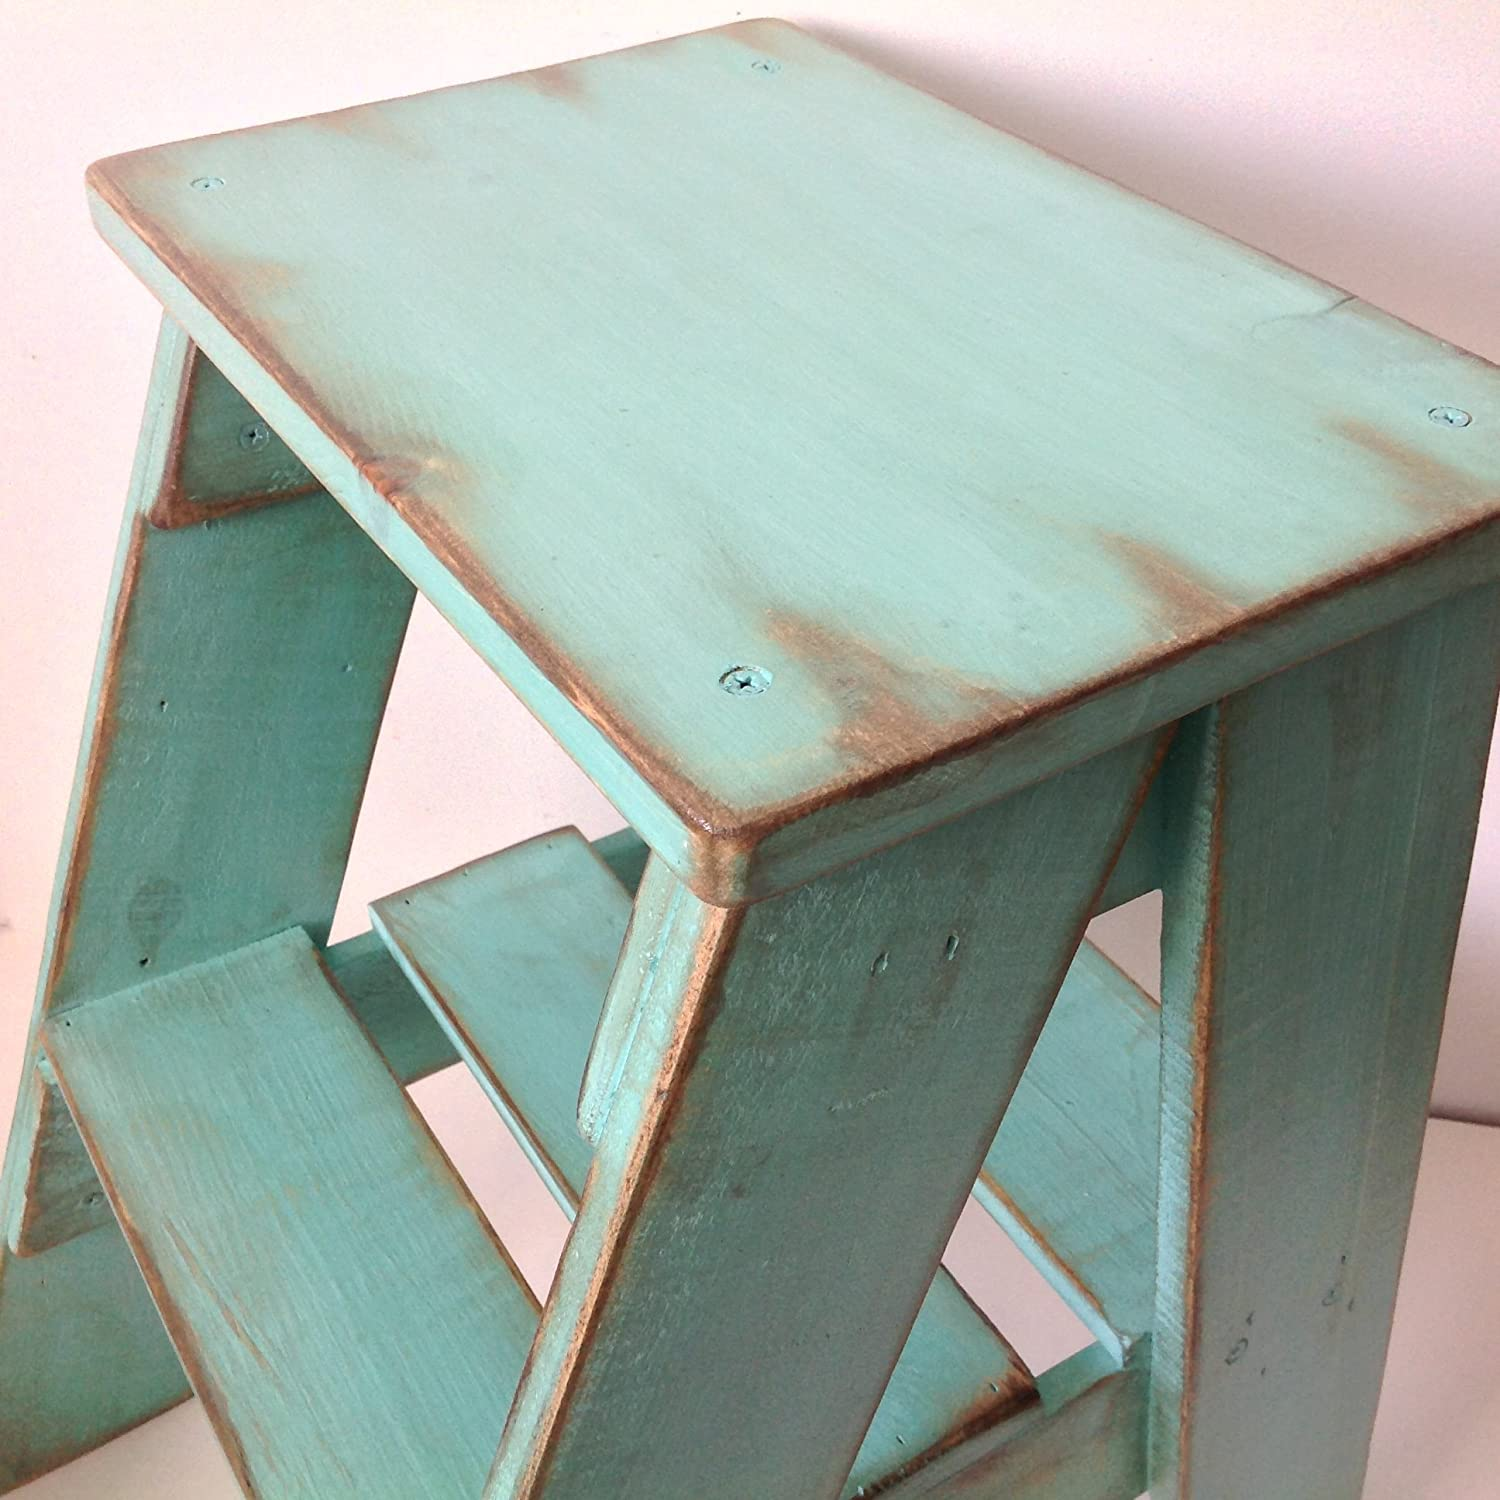 Amazon.com: Rustic Wood Step Stool Shabby Chic Furniture / Bedroom ...